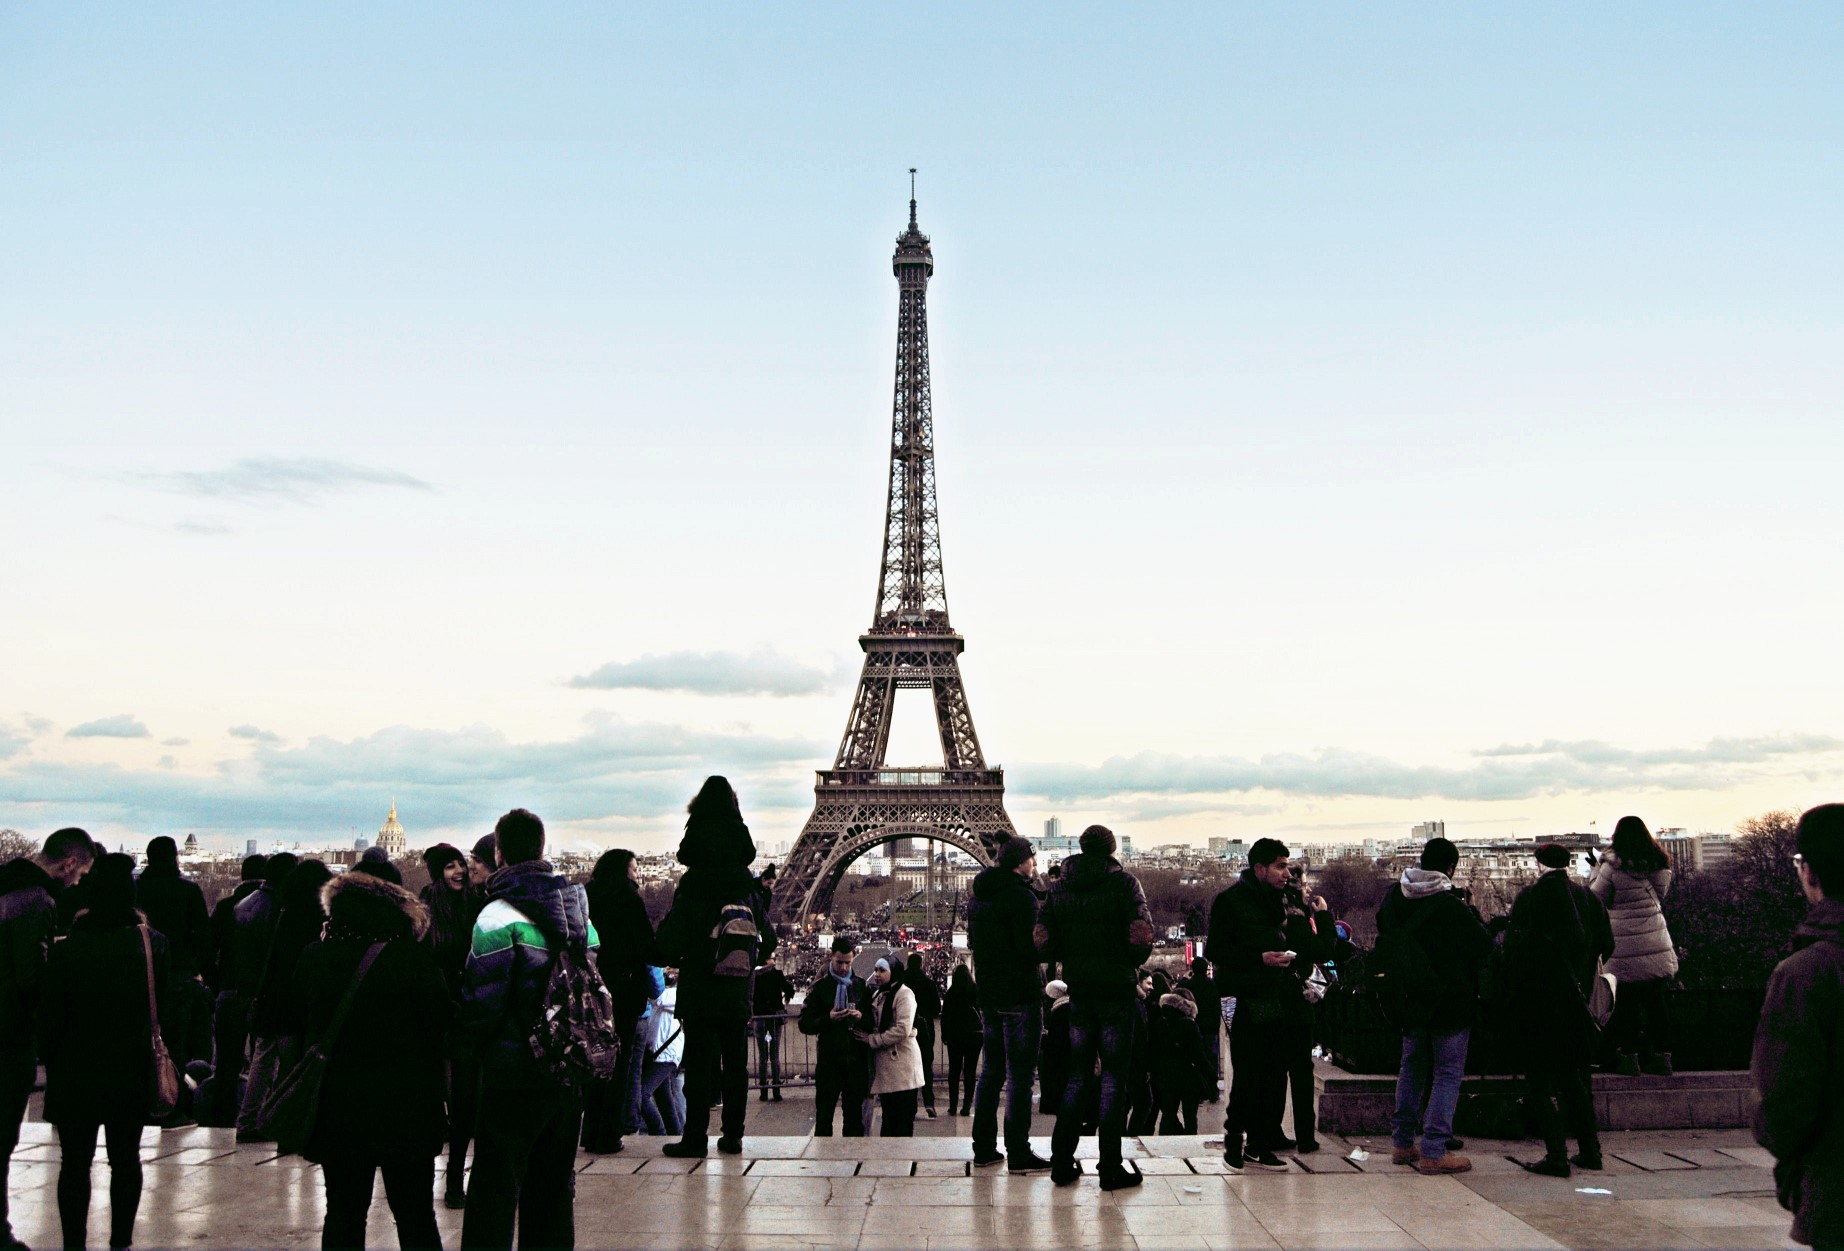 Wall to be built around Eiffel Tower